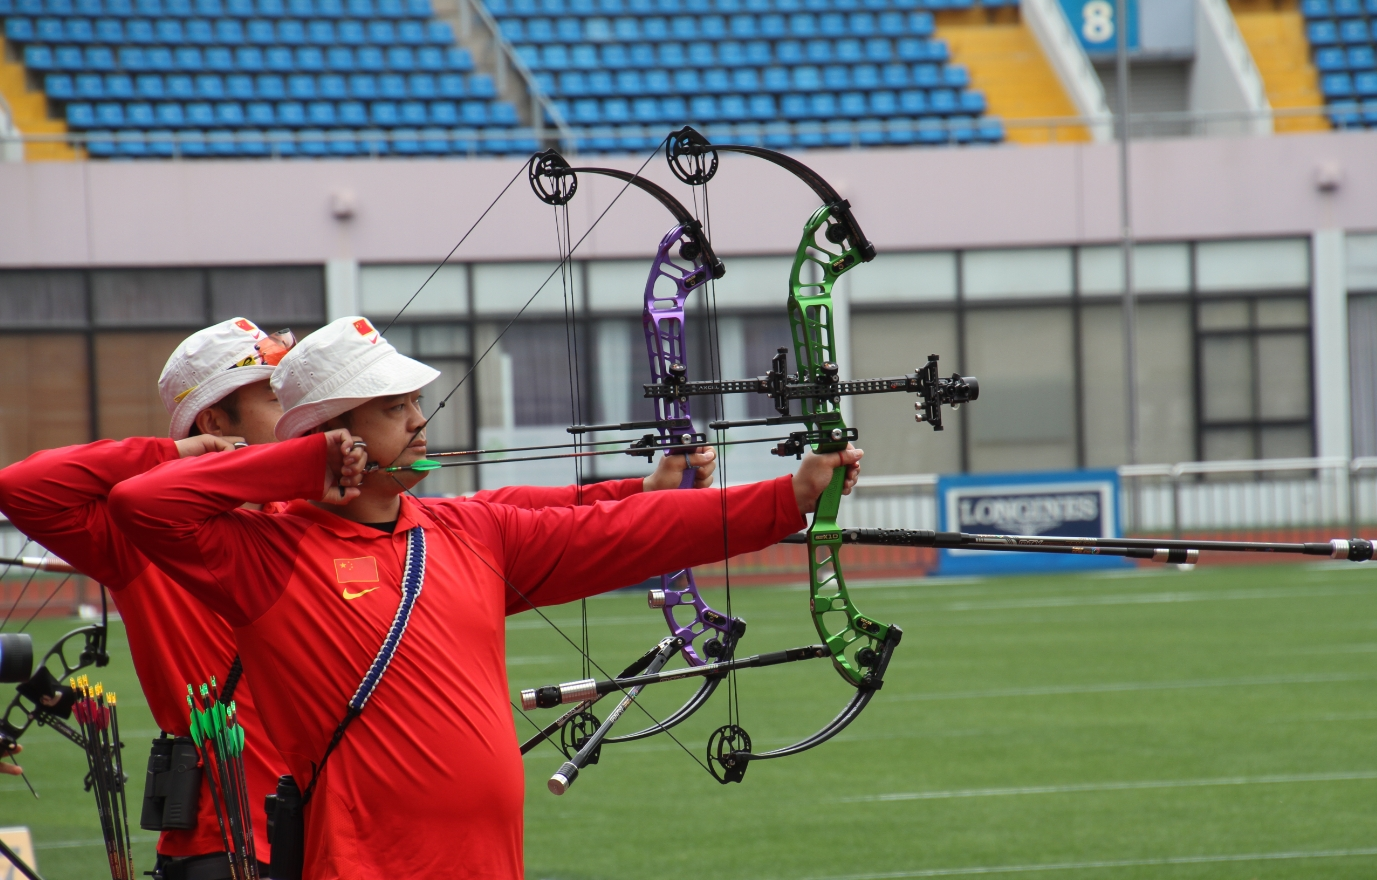 Chinese Archery nation team will use Hero X10 to attend World Cup 2020 Shanghai